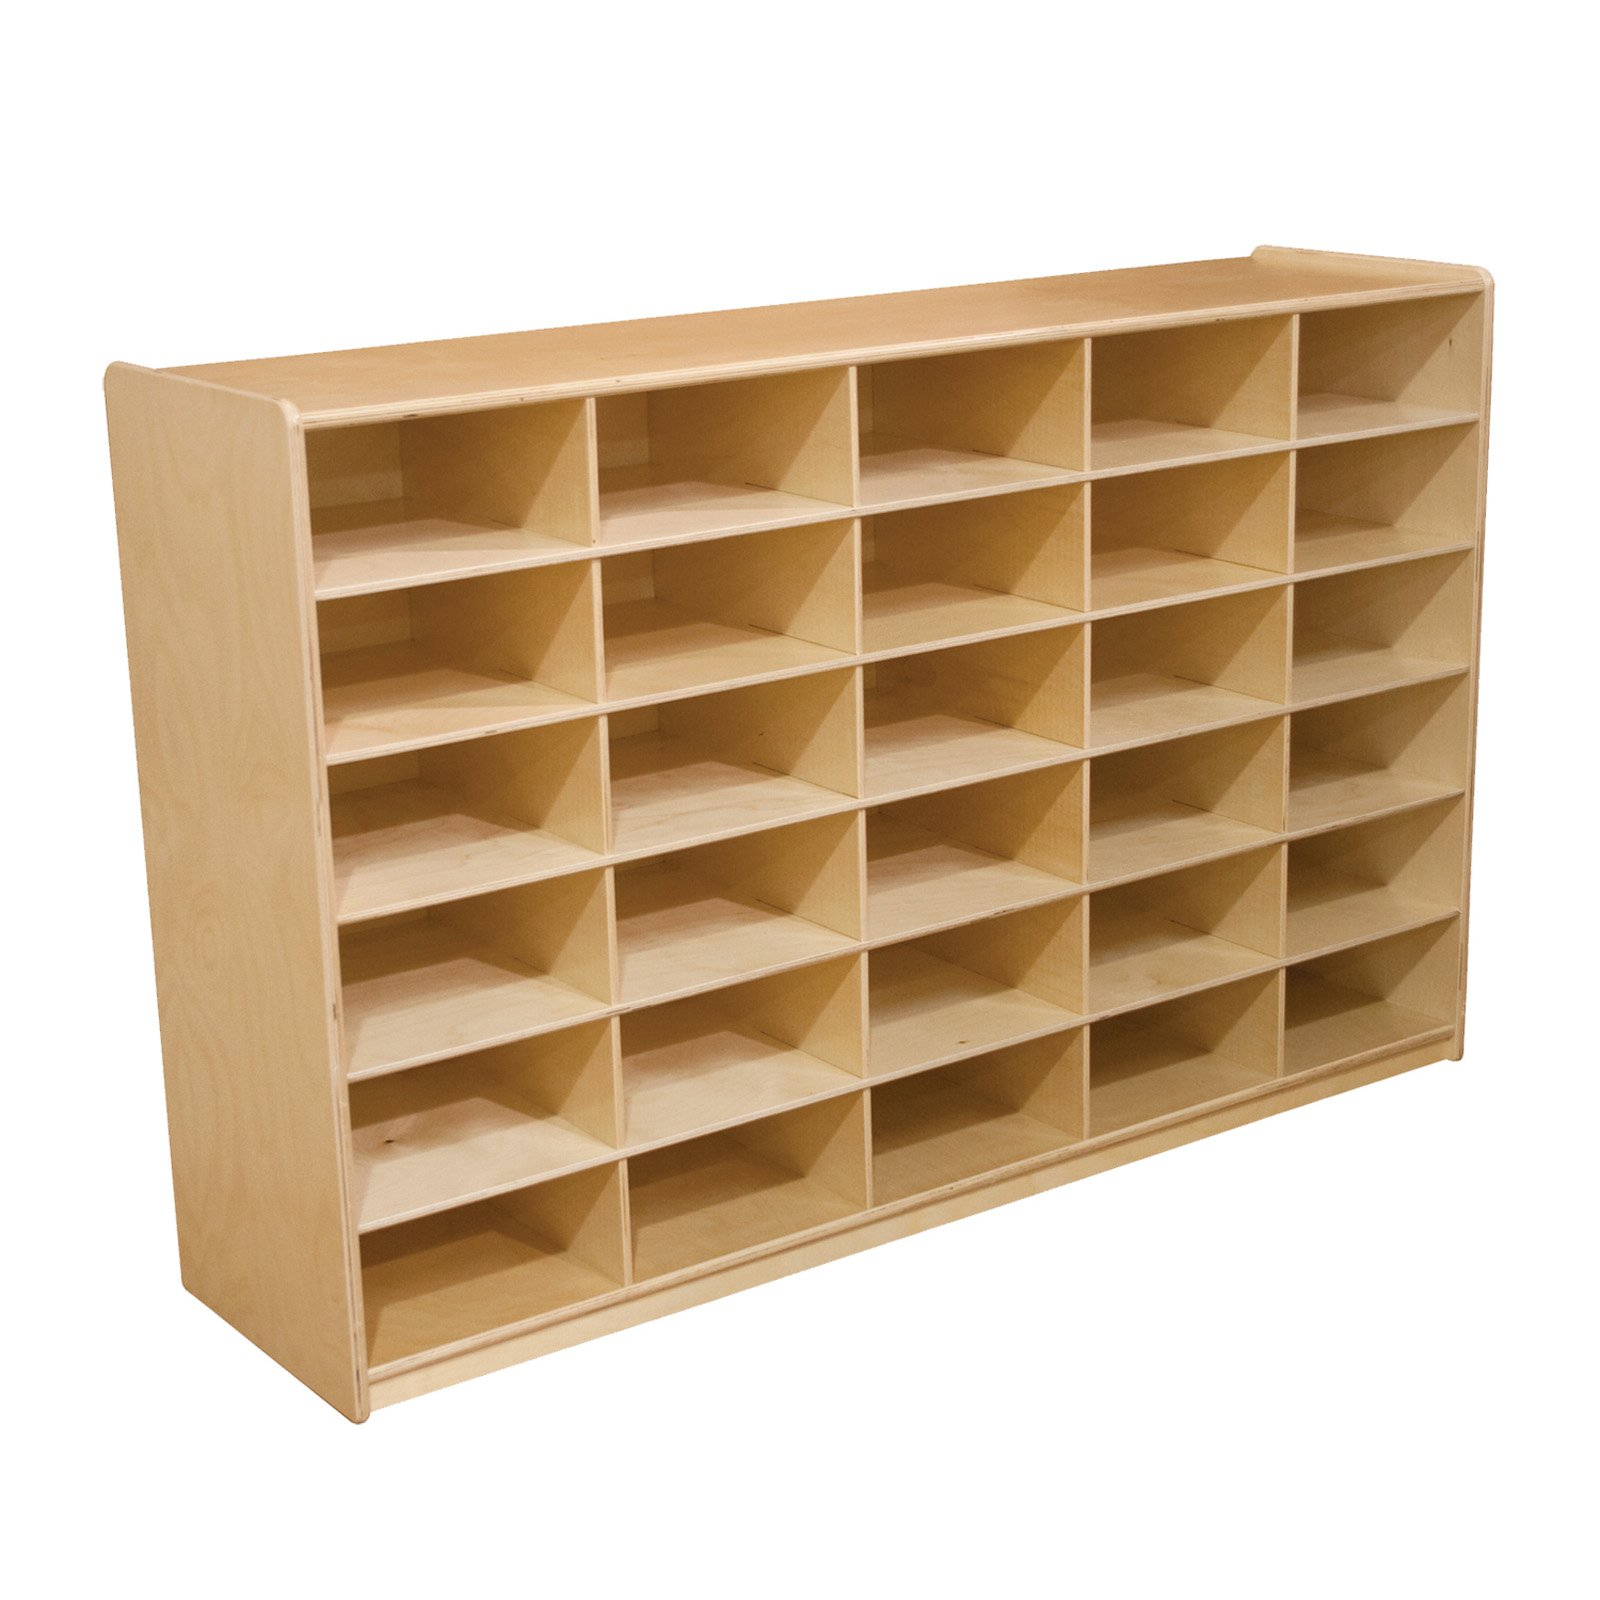 Wood Designs 30 Letter Tray Storage Unit without 5 in. Trays